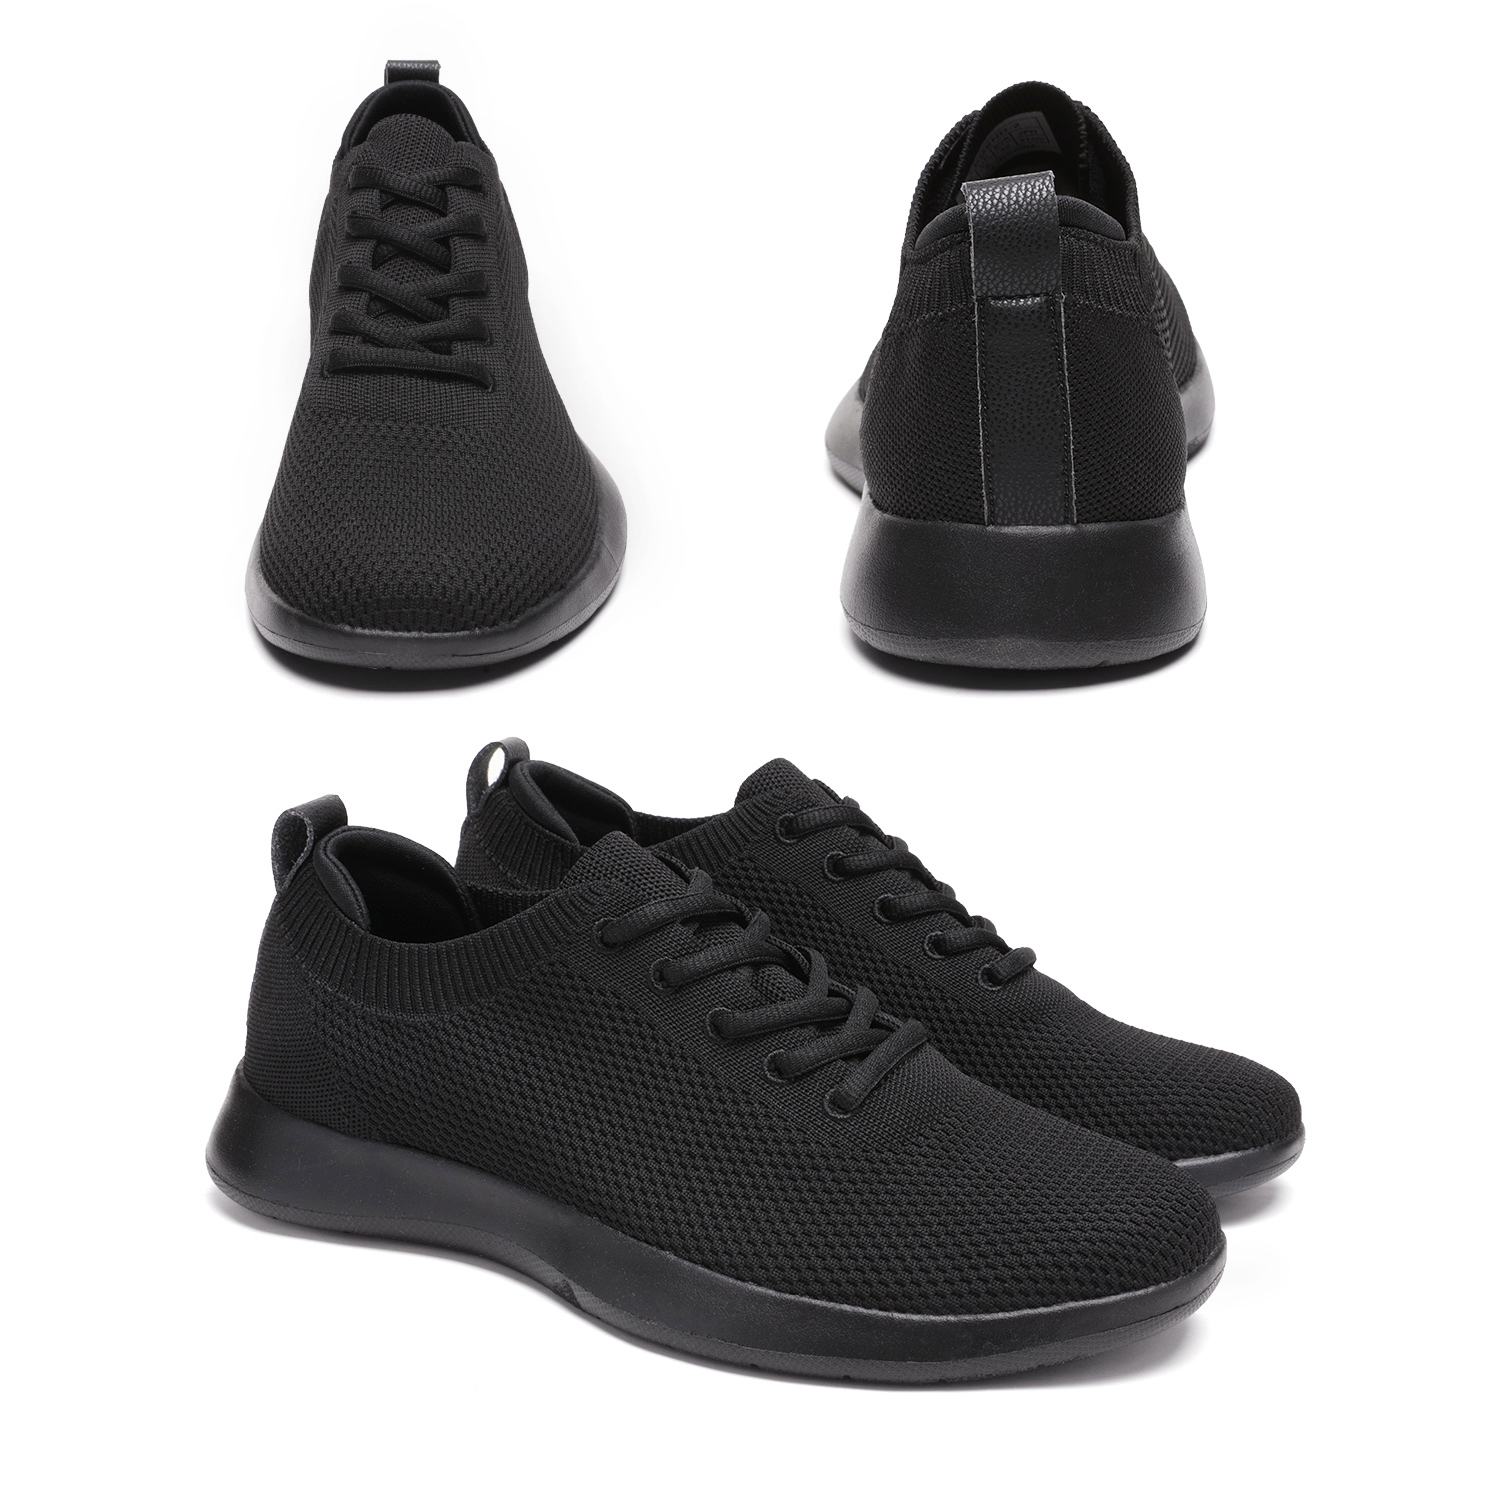 thumbnail 7 - Bruno Marc Mens Walking Shoes Breathable Fashion Sneaker Casual Shoe Size 6.5-13